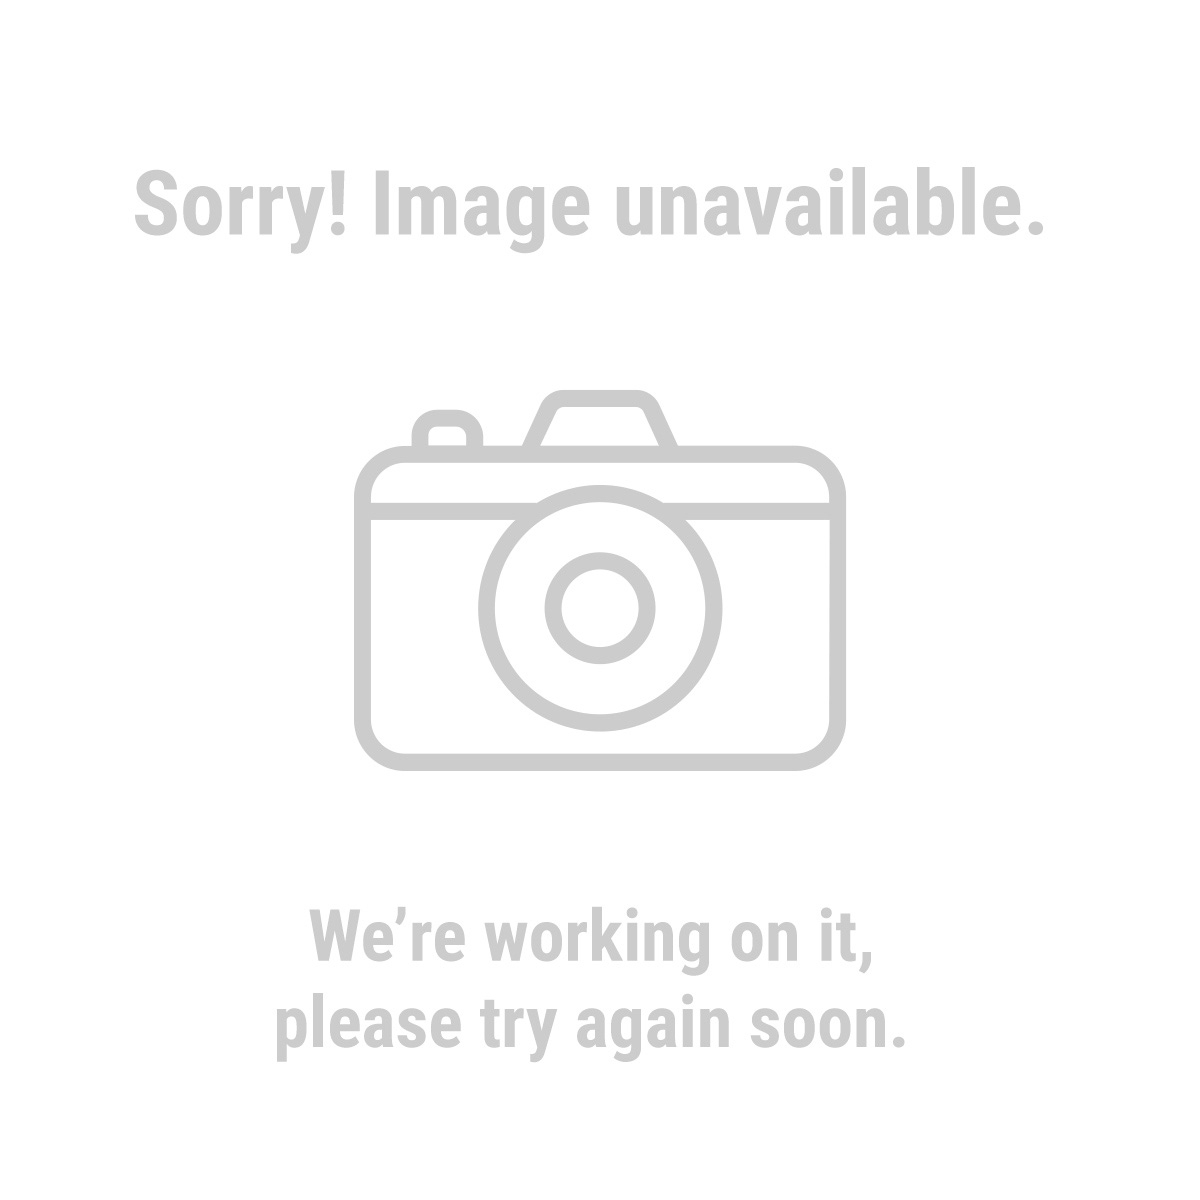 Chicago Electric Generators 92863 6 HP, 2800 Watts Max/2200 Watts Rated Generator